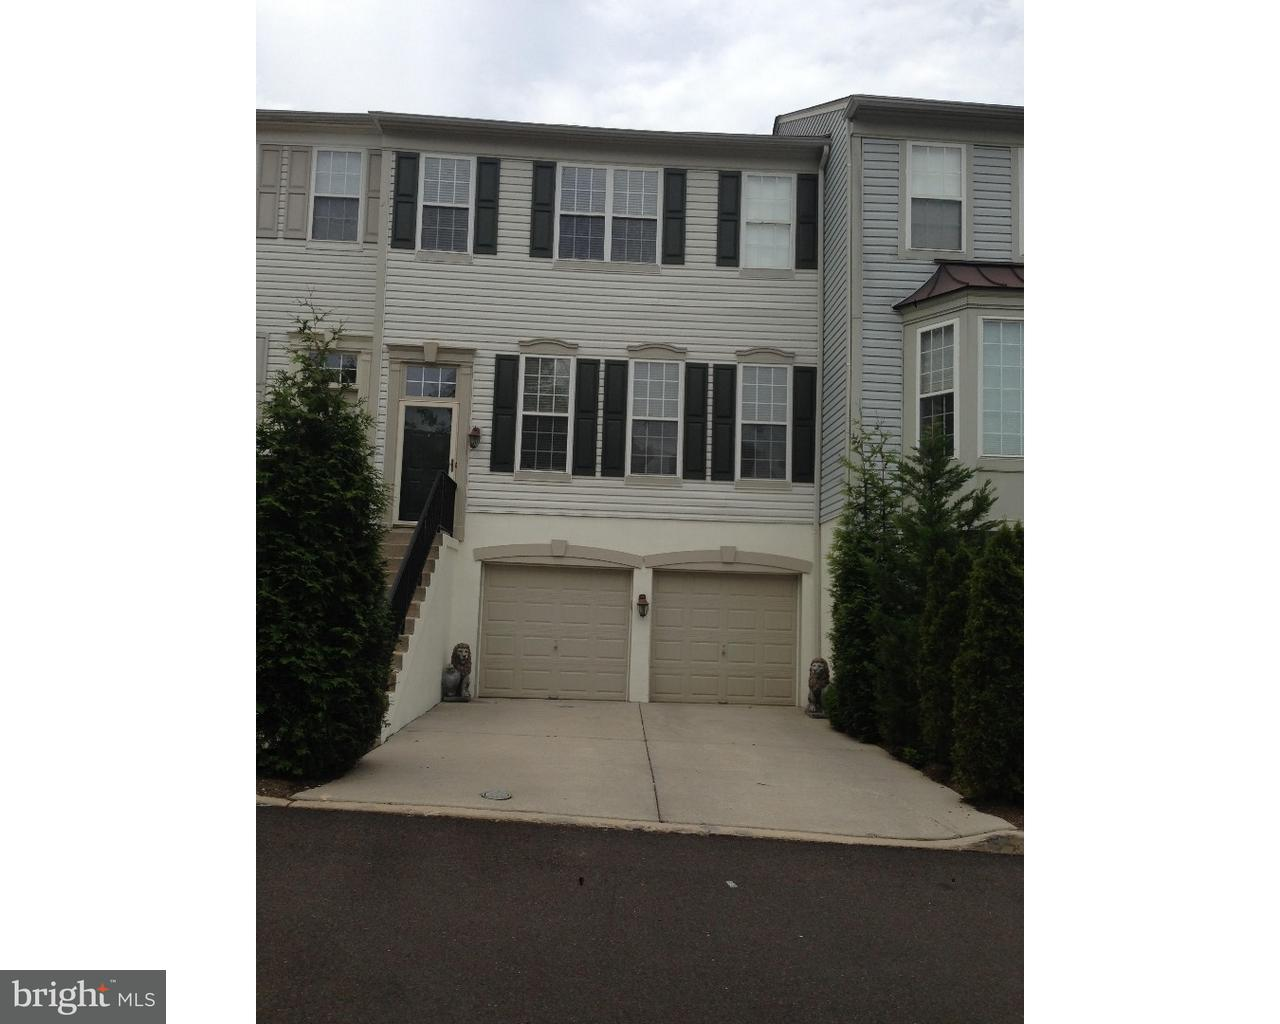 8 HONEY LOCUST CT, LAFAYETTE HILL - Listed at $3,200, LAFAYETTE HILL